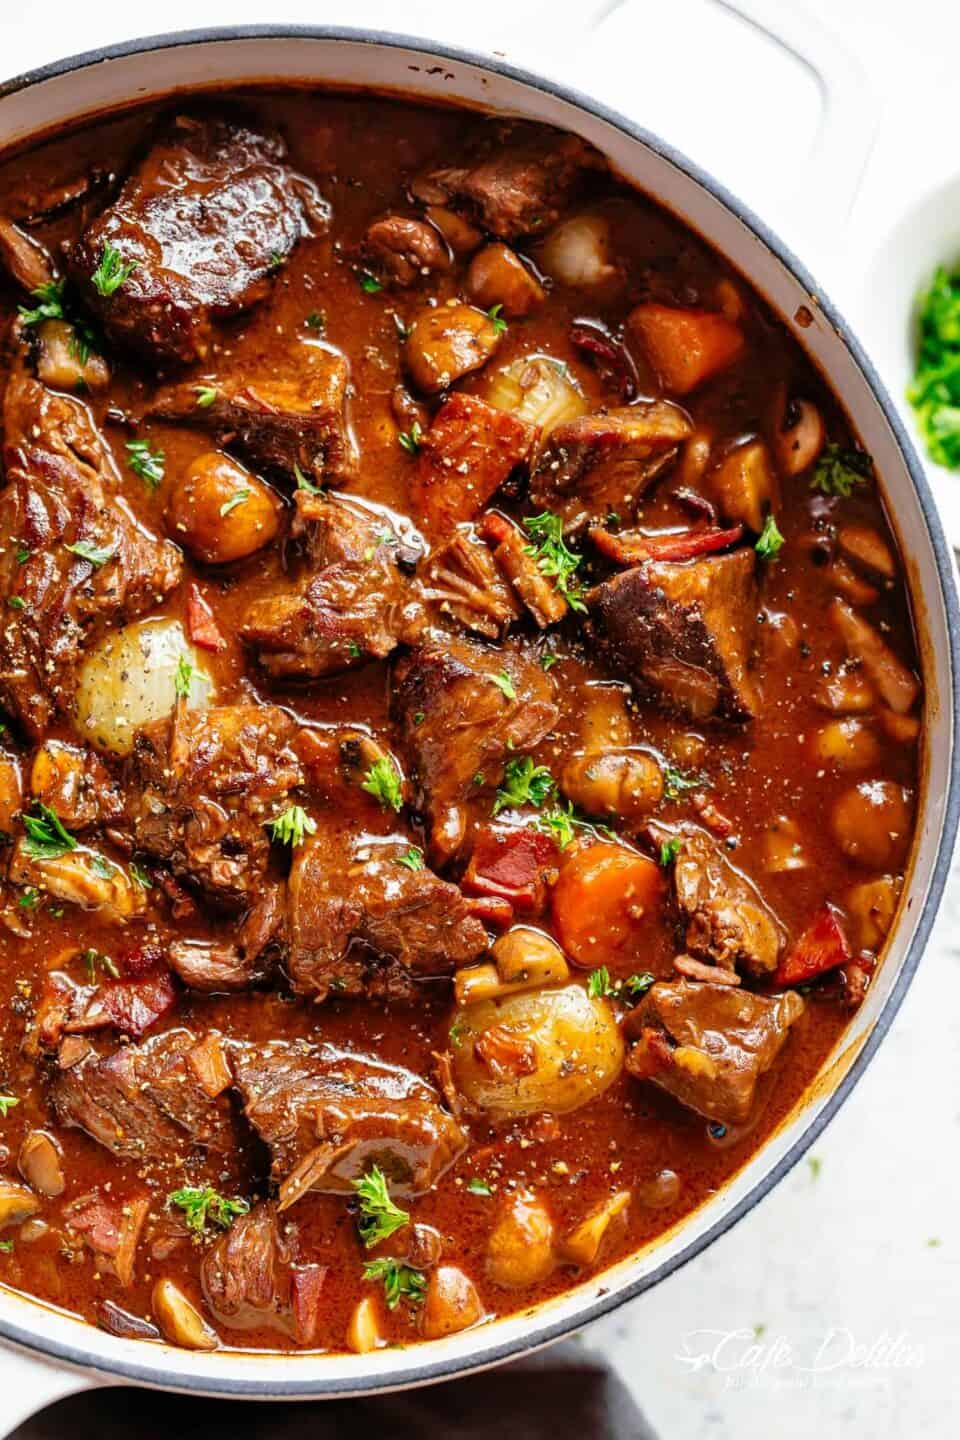 25 Stew Recipes to Meal Prep this Fall